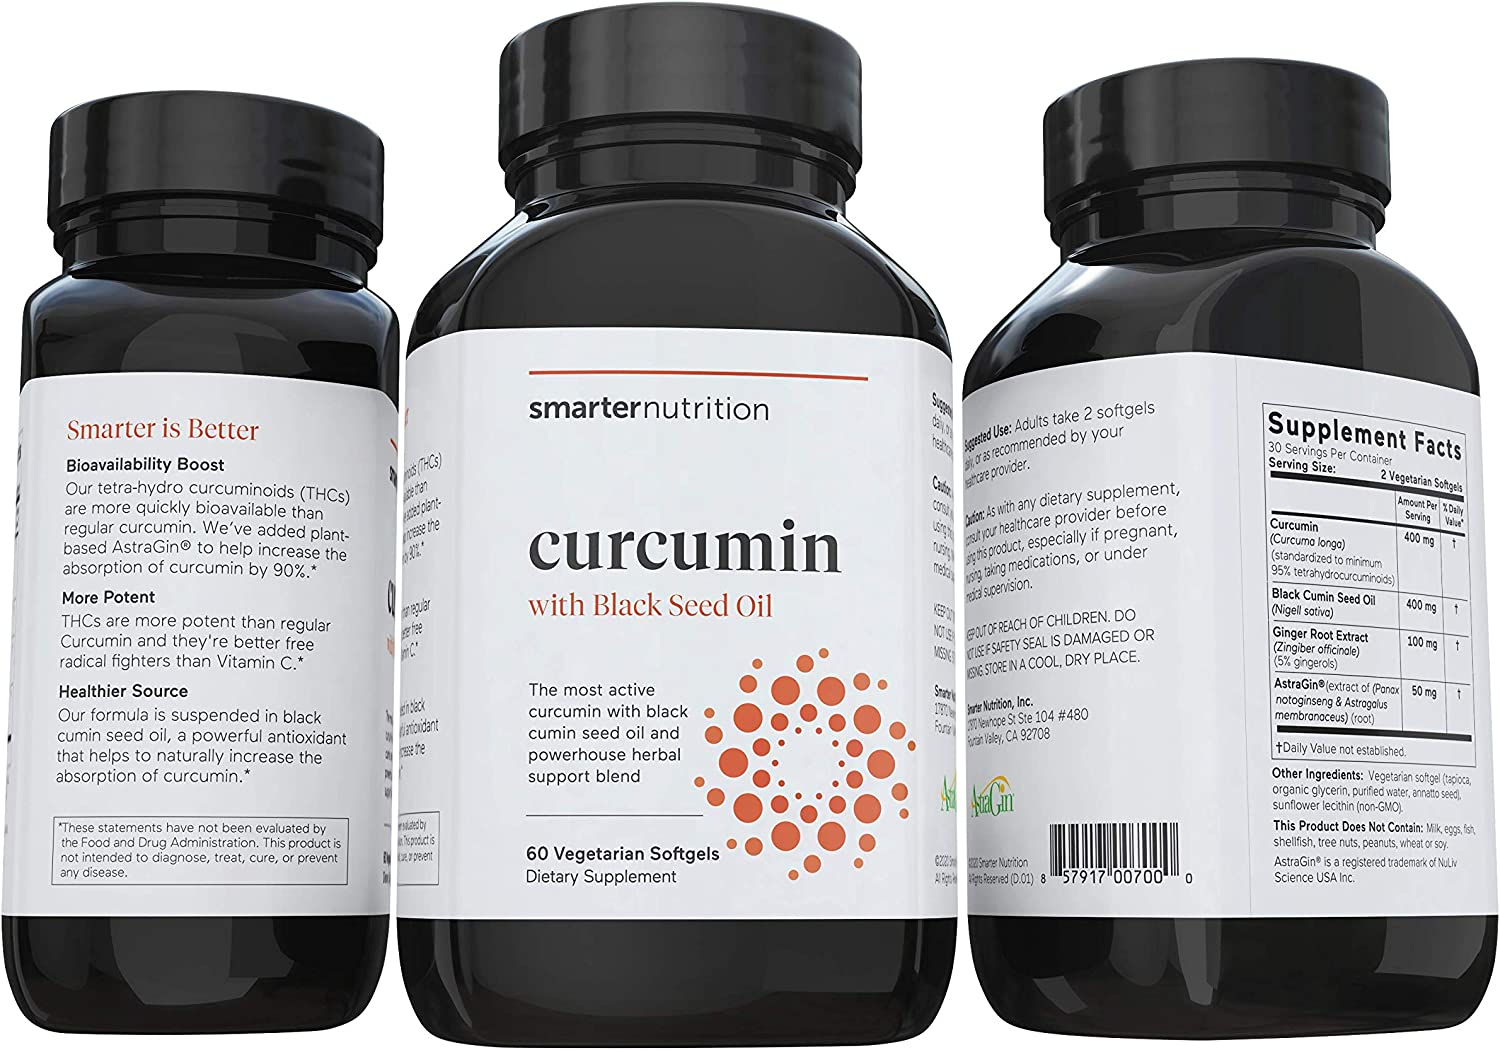 Smarter Nutrition Curcumin - Potency and Absorption in a SoftGel - The Most Active Form of Curcuminoid - 95% Tetra-Hydro Curcuminoids, 1 pack of 60 capsules - 30 Servings